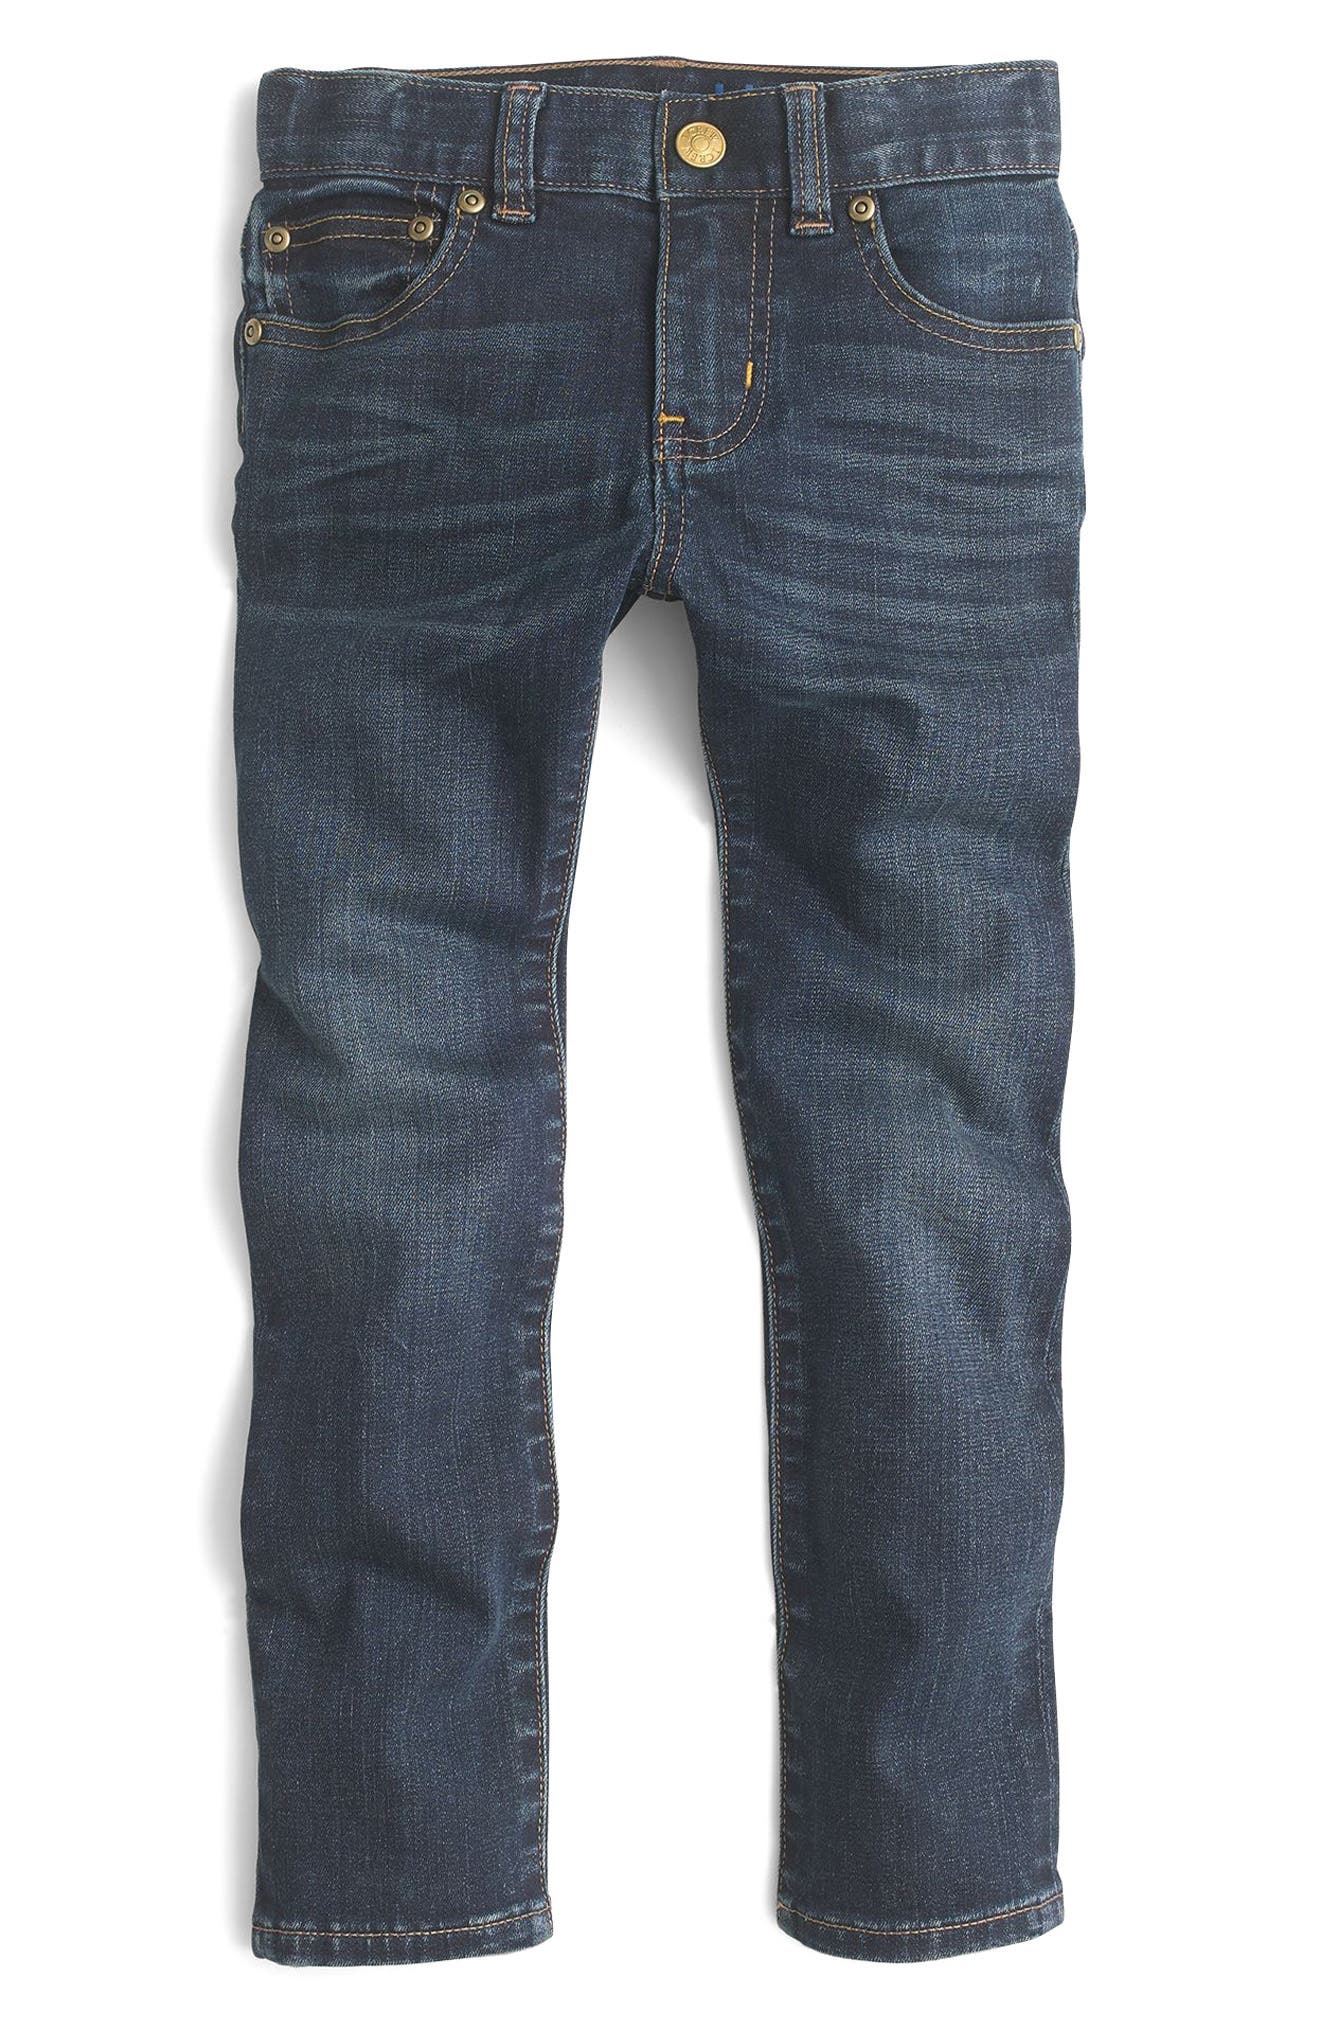 Dark Wash Stretch Skinny Fit Jeans,                             Main thumbnail 1, color,                             Baxter Wash